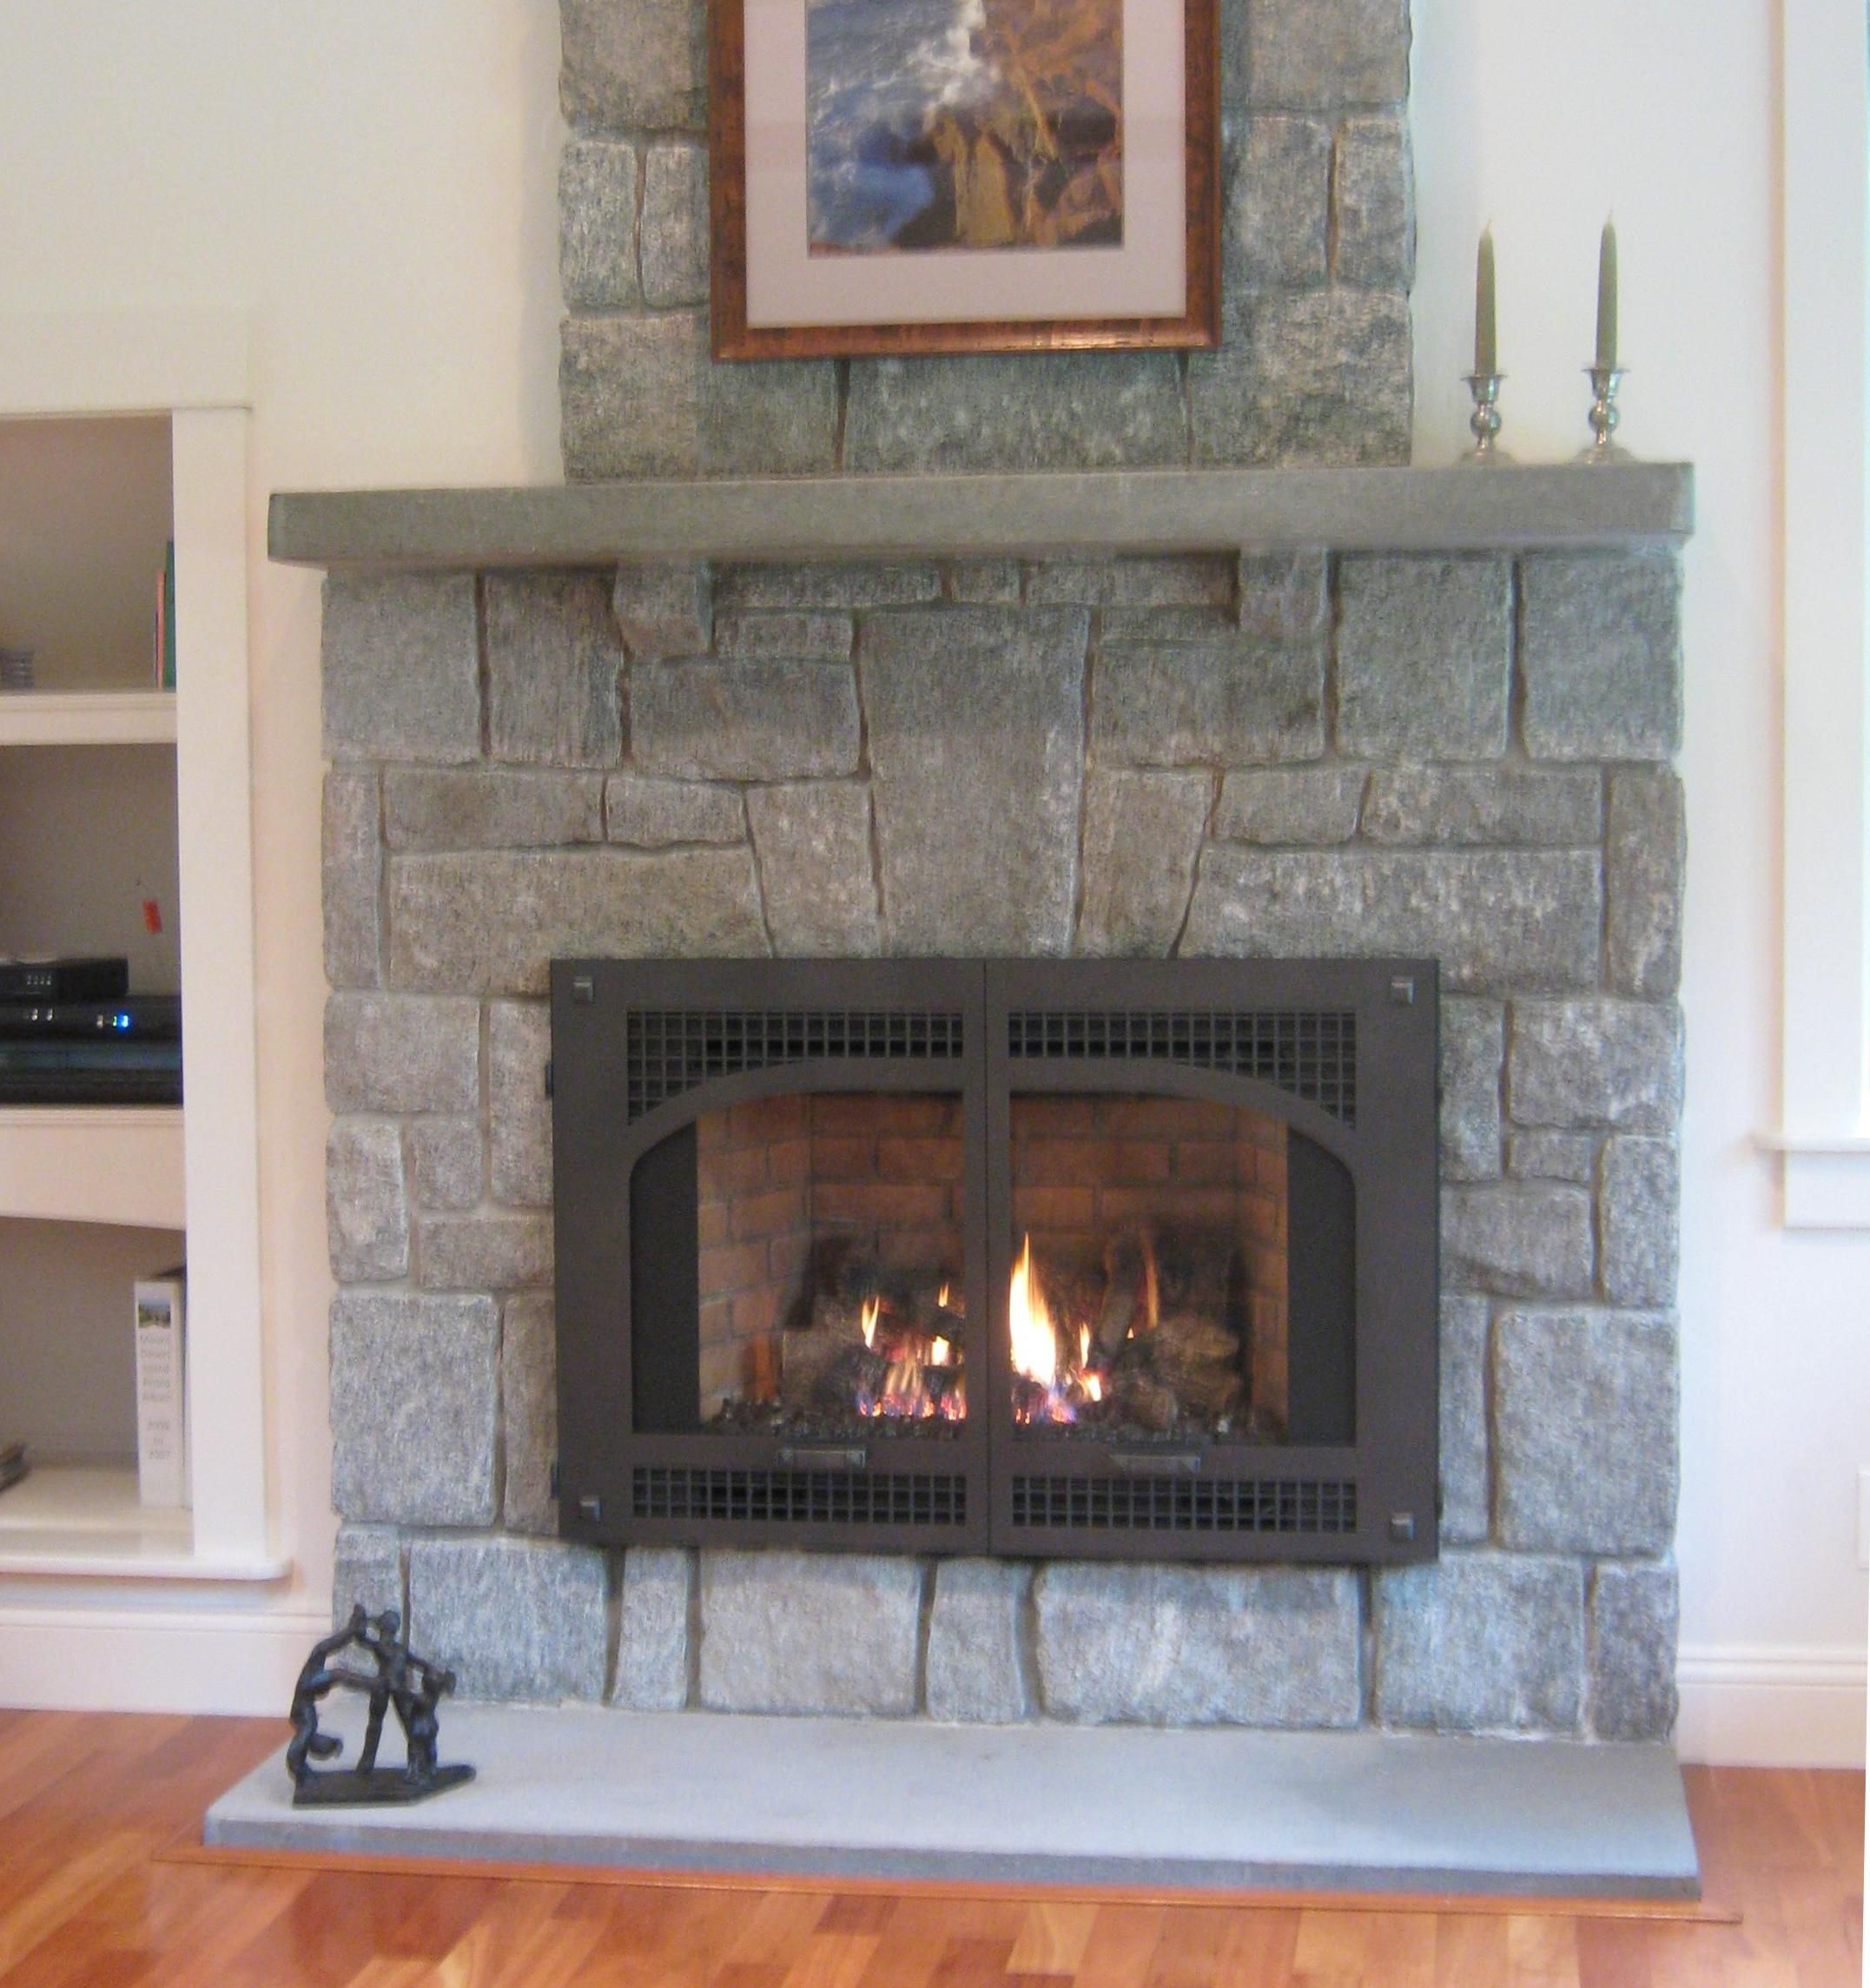 Perfect Pellet Stove Inserts For Fireplace | Full Service Stove, Fireplace And Fireplace  Insert Shop.